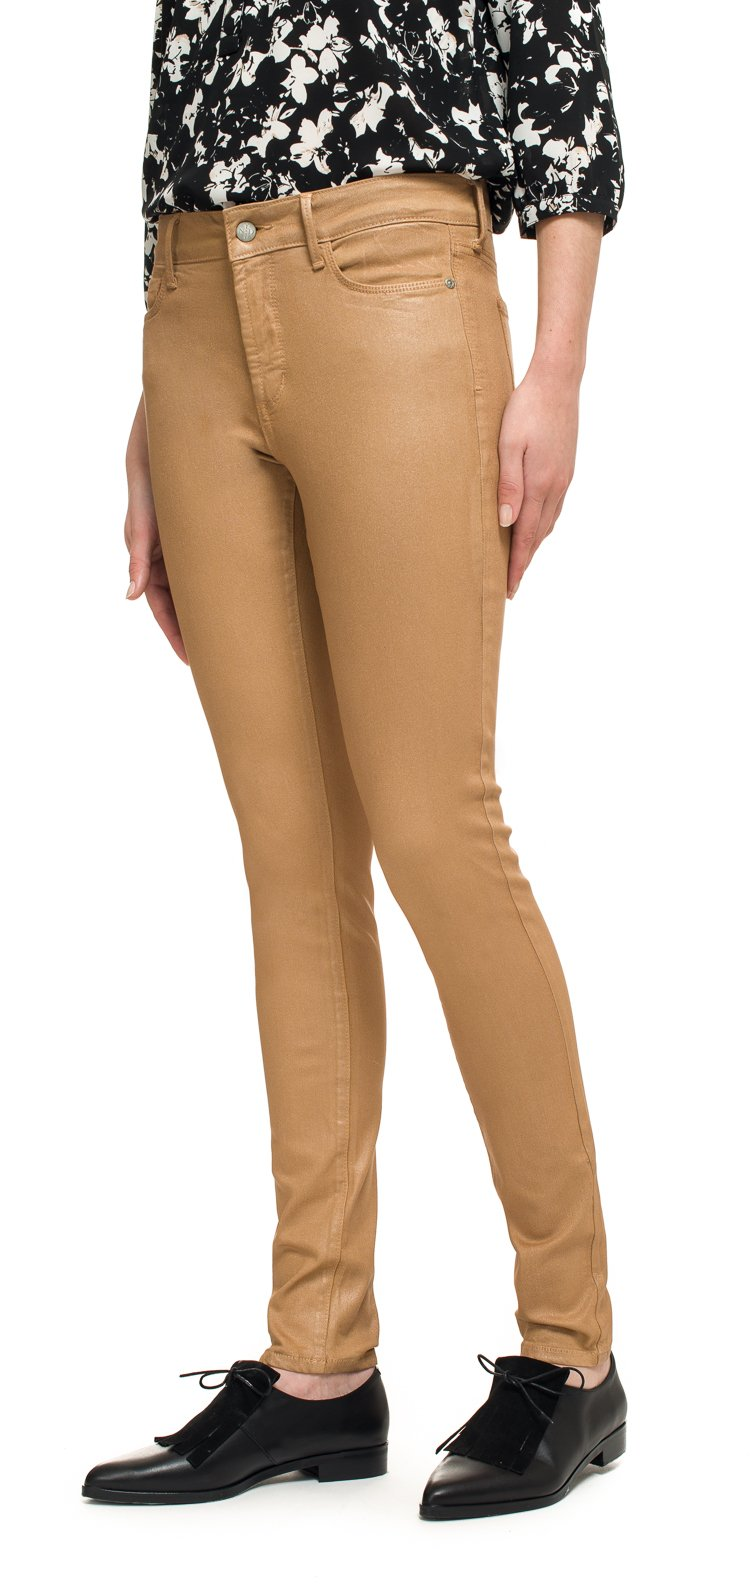 Image of NYDJ Jeans Ami Skinny Legging in rose gold coated denim Größe 34